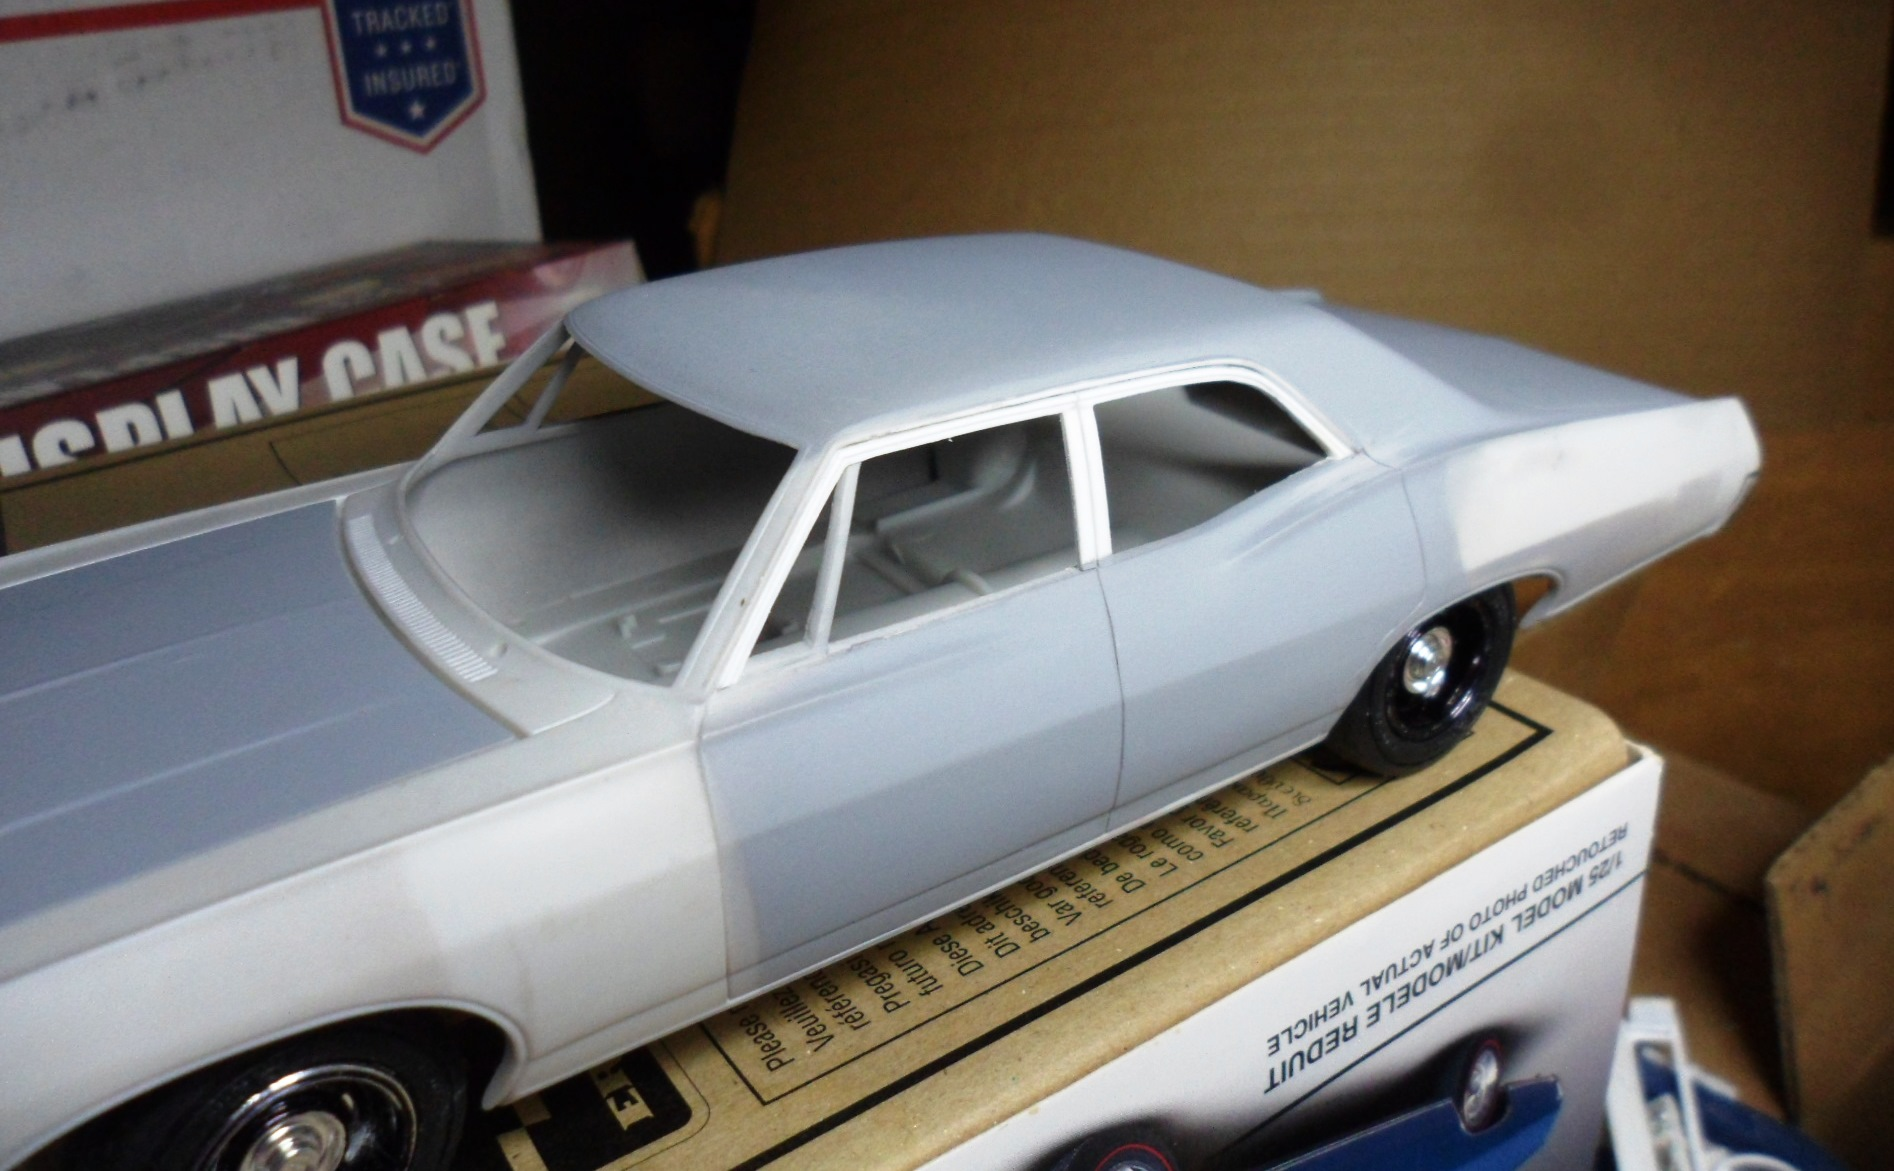 1967 chevy biscayne 4dr wip model cars model cars magazine forum 1967 chevy biscayne 4dr wip model cars model cars magazine forum